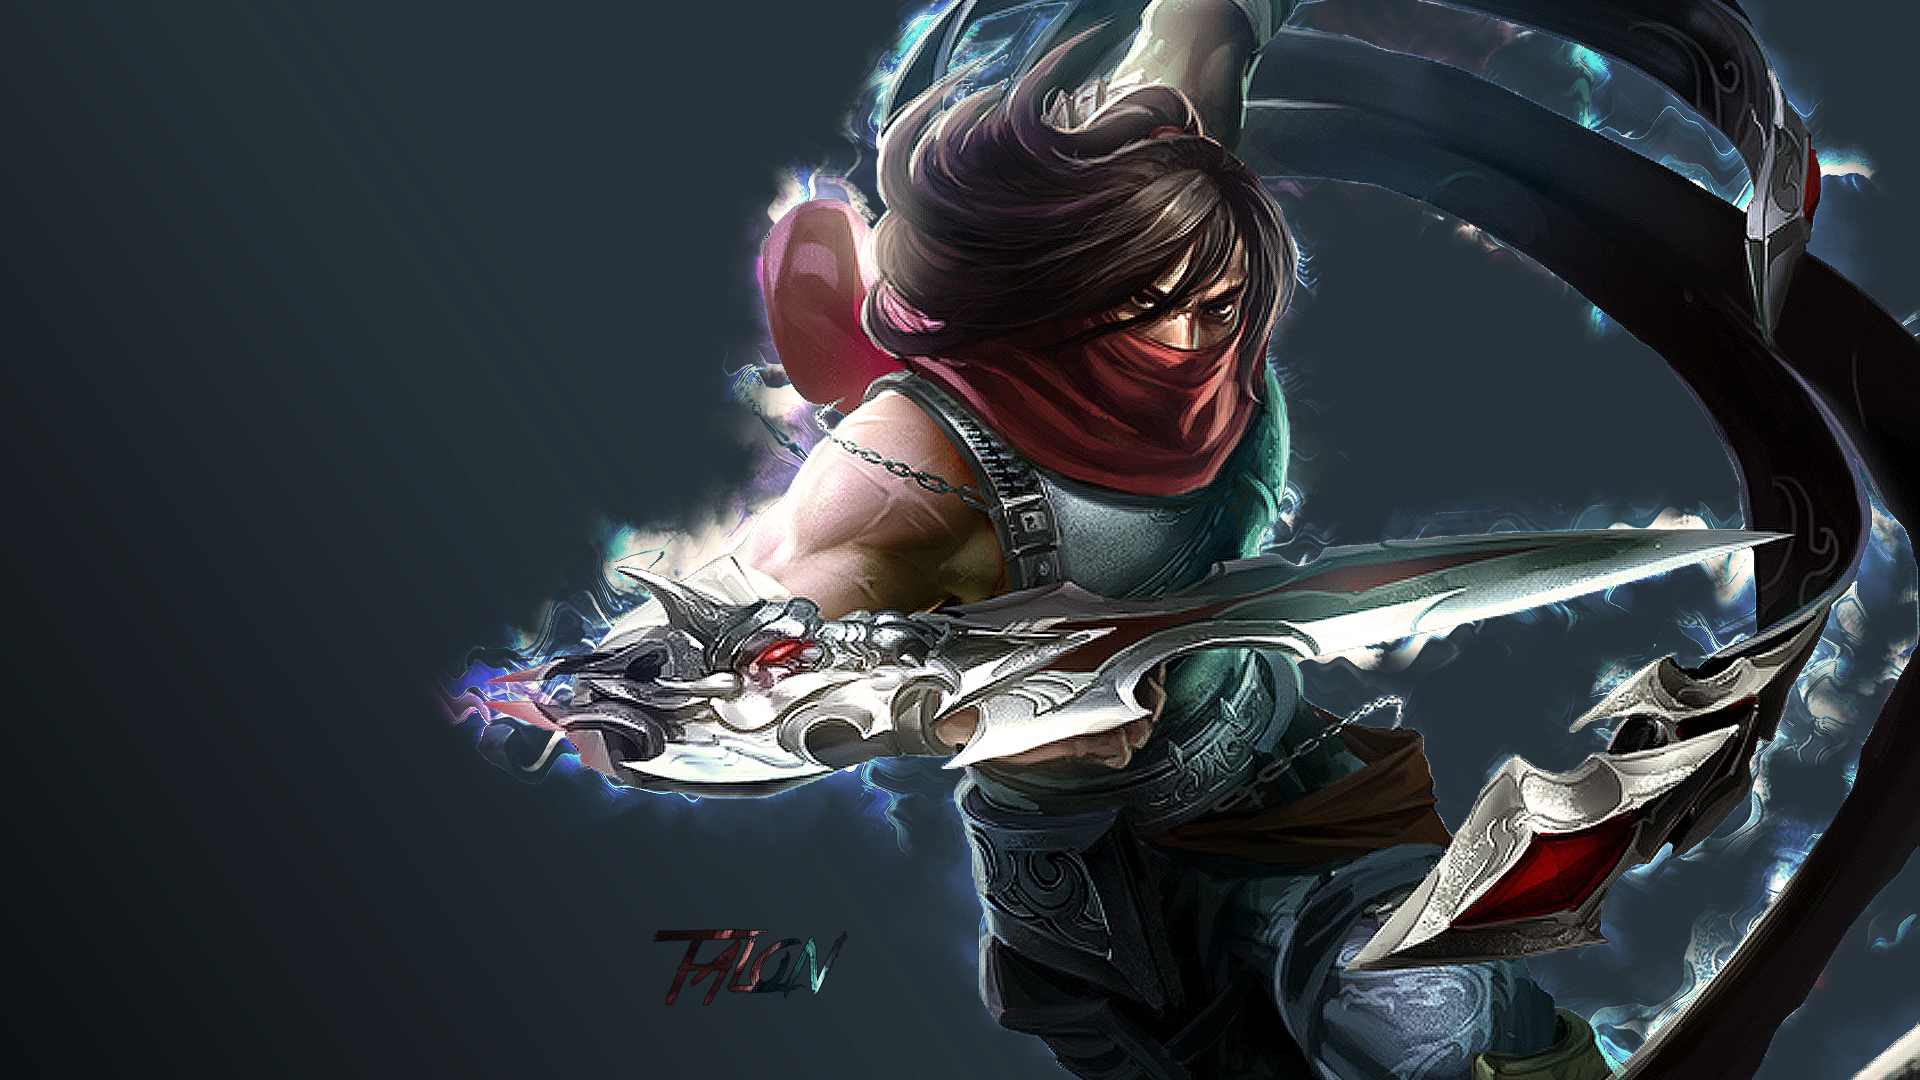 Images of Talon | 1920x1080